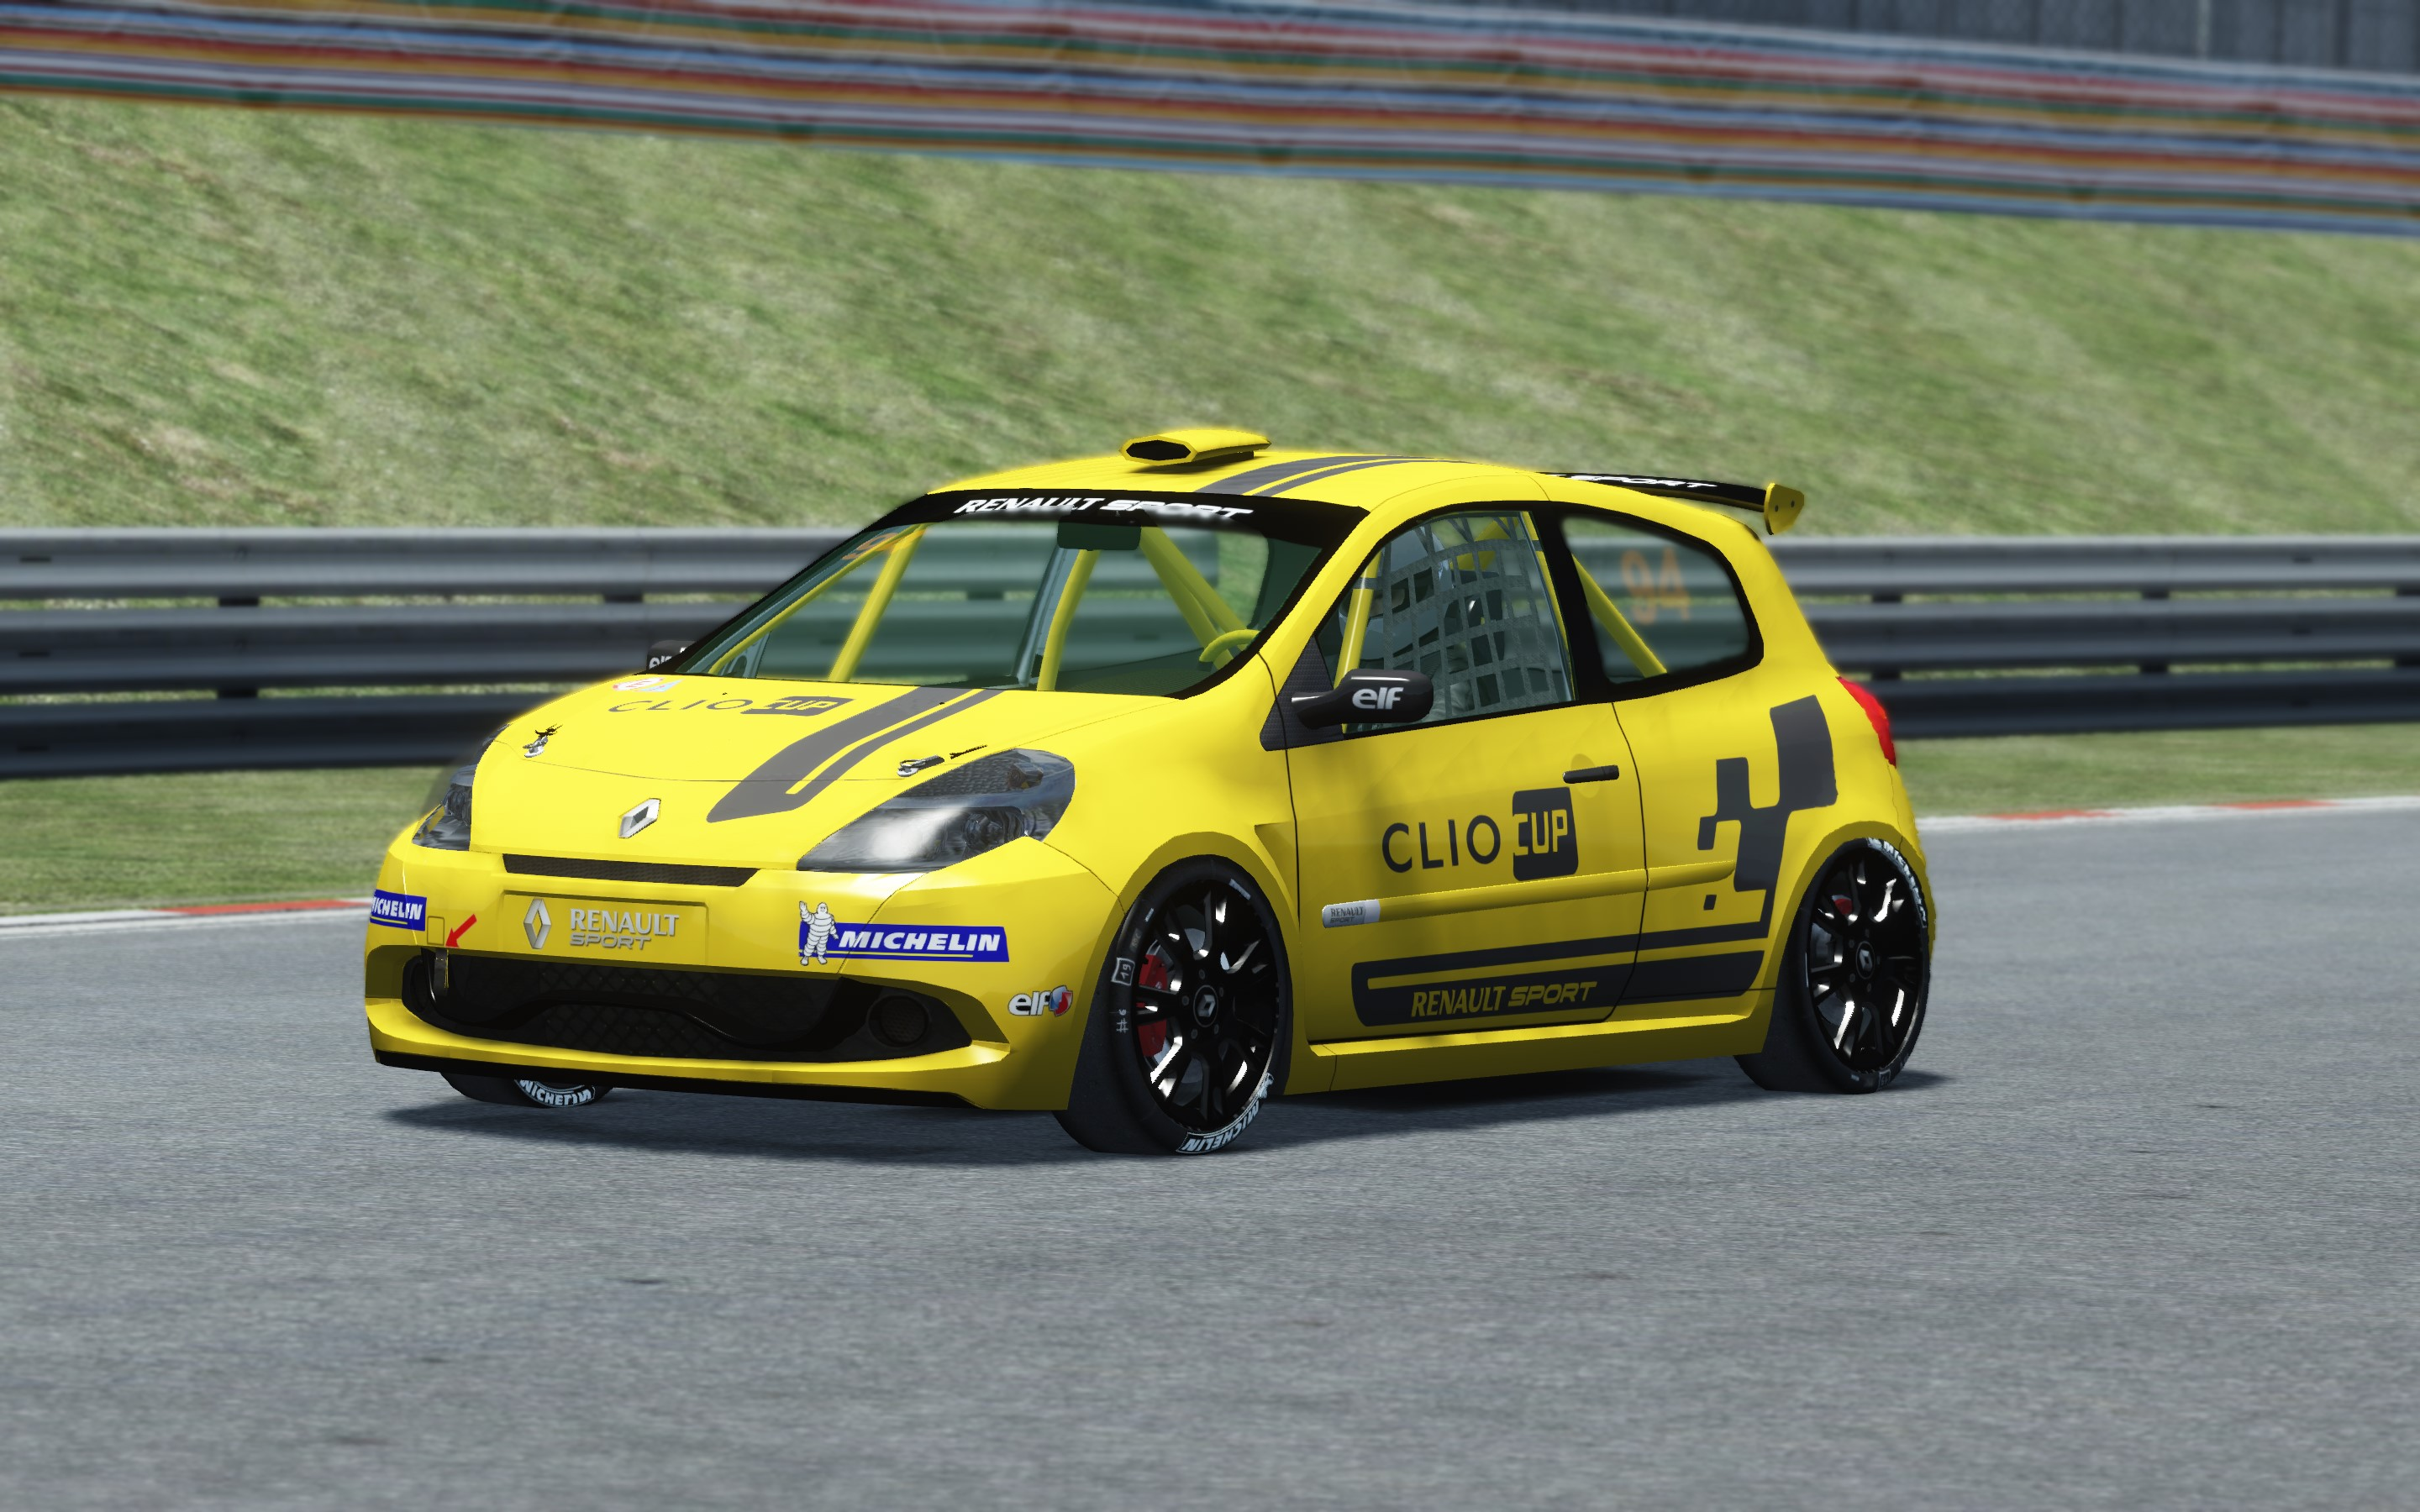 Screenshot_renault_clio_cup_197_brands-hatch-indy_1-3-2015-12-17-52.jpg